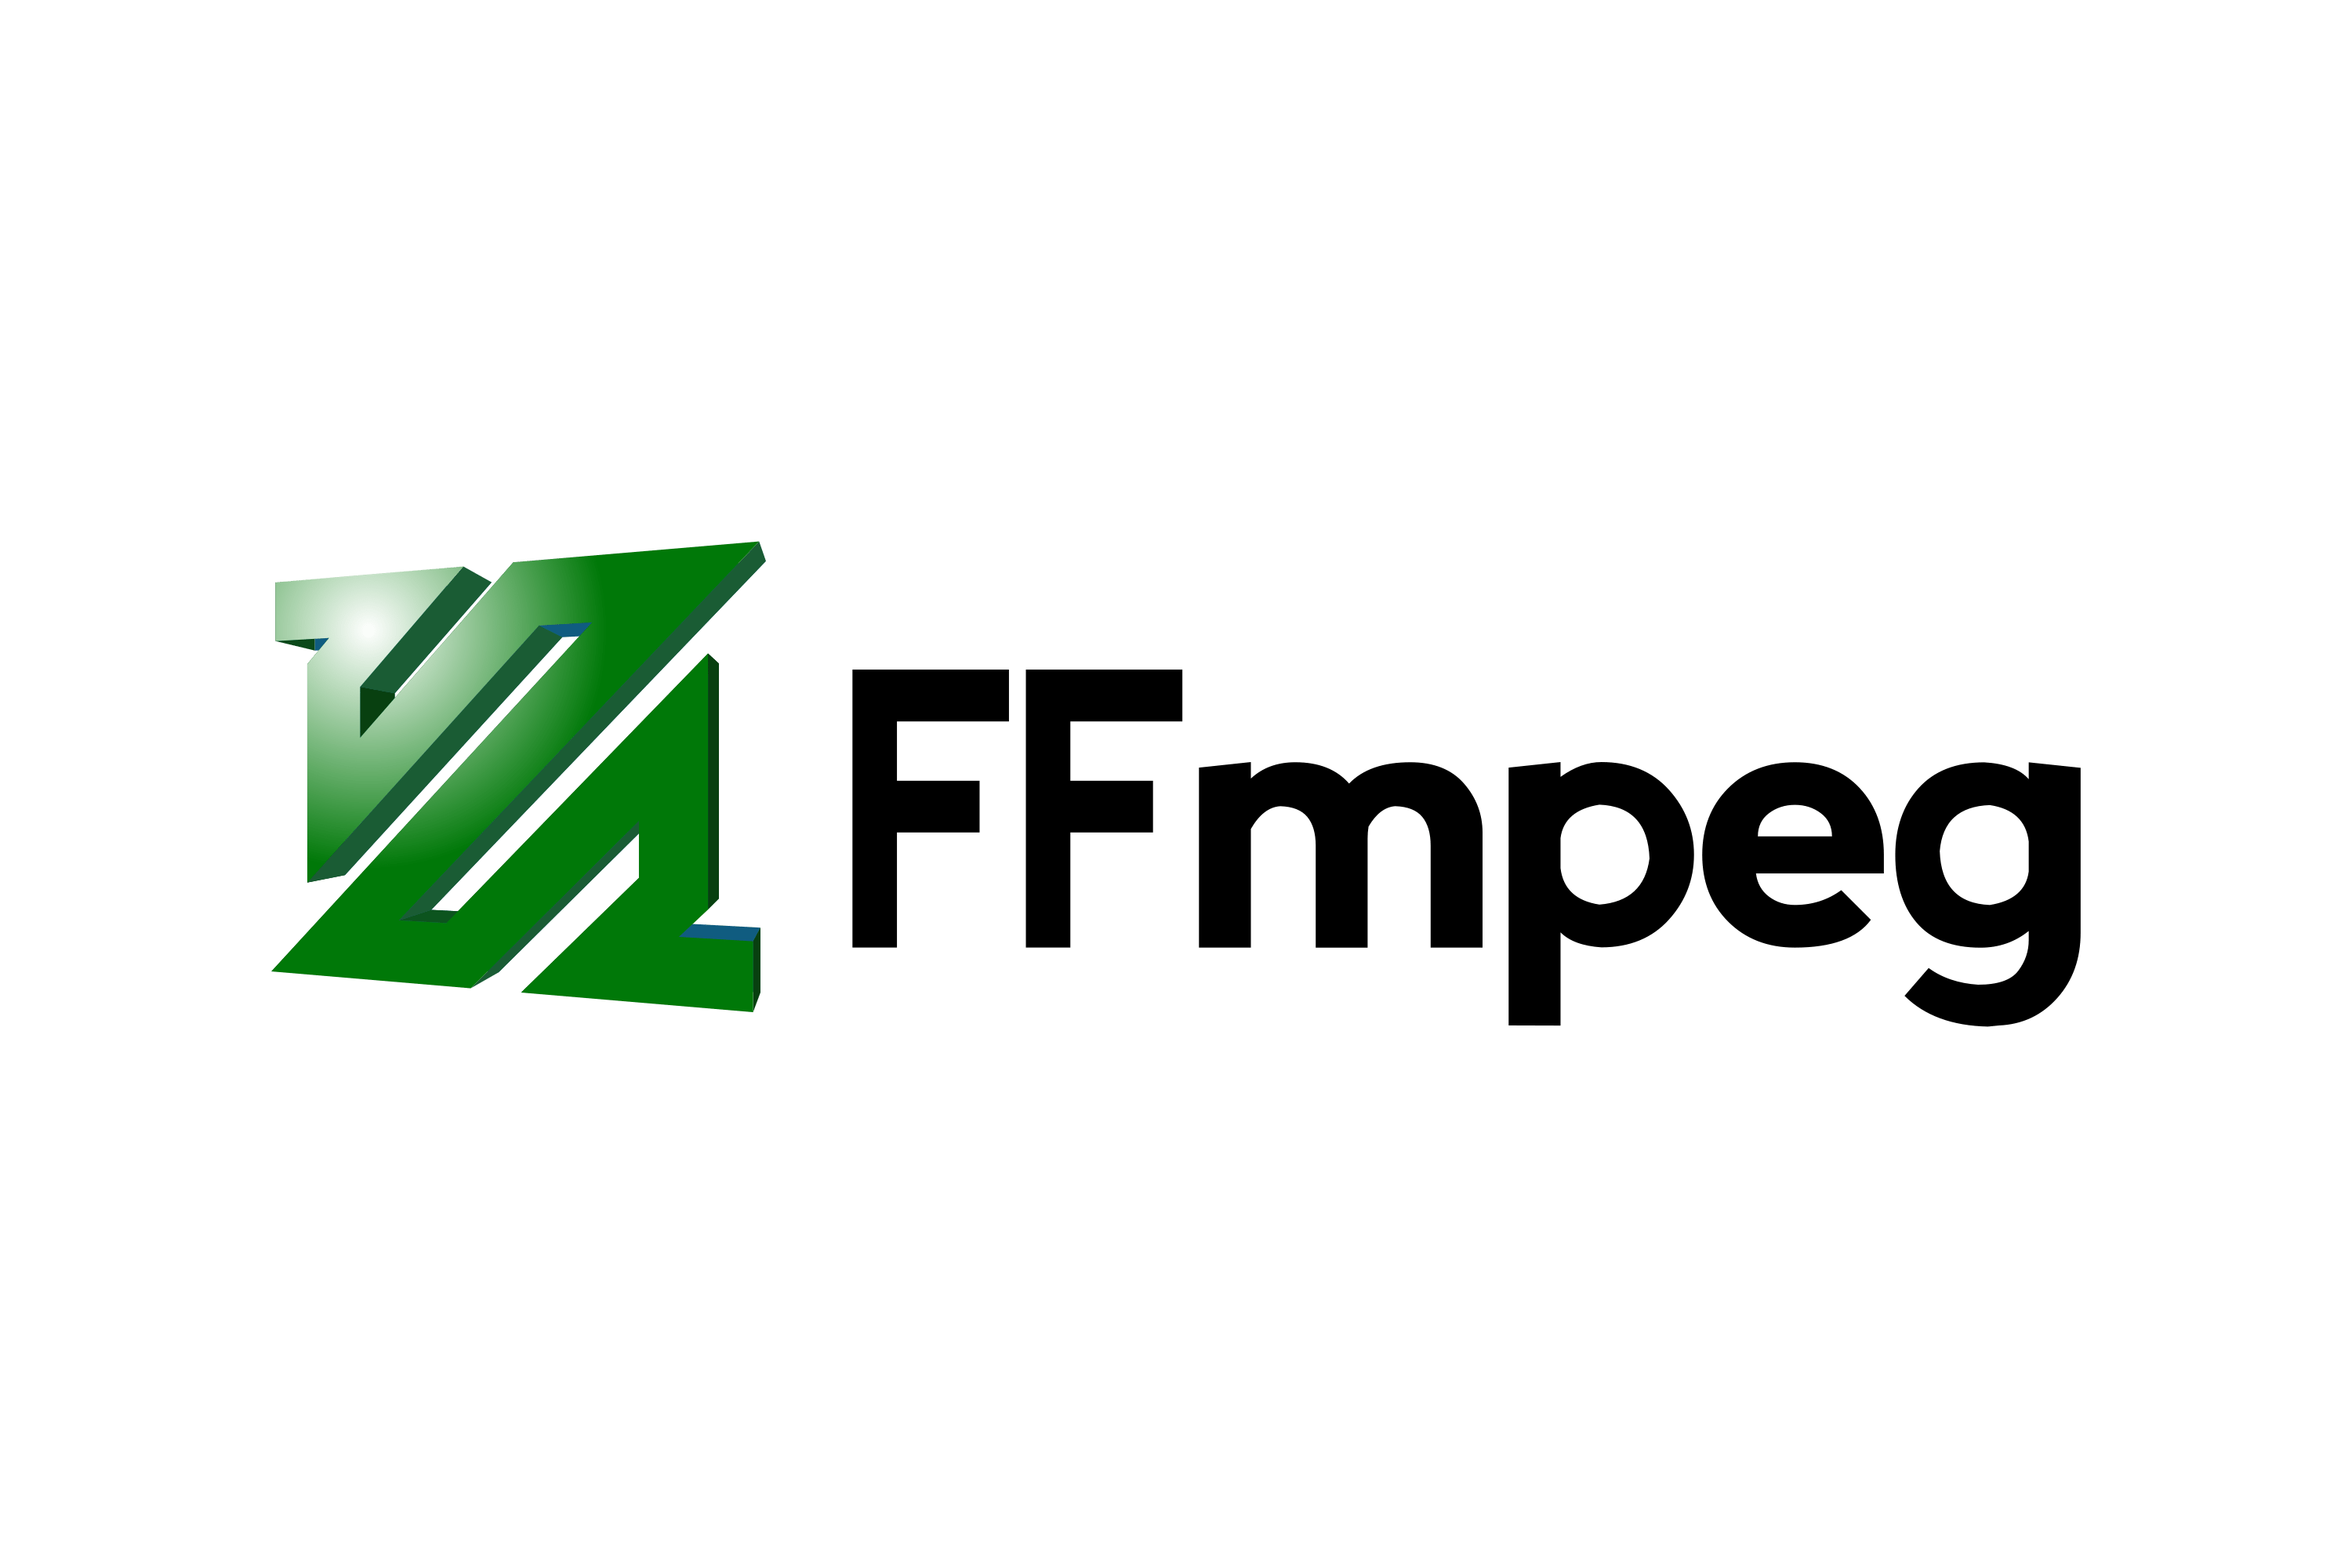 Live Stream to the Browser with FFMPEG CLI and Python